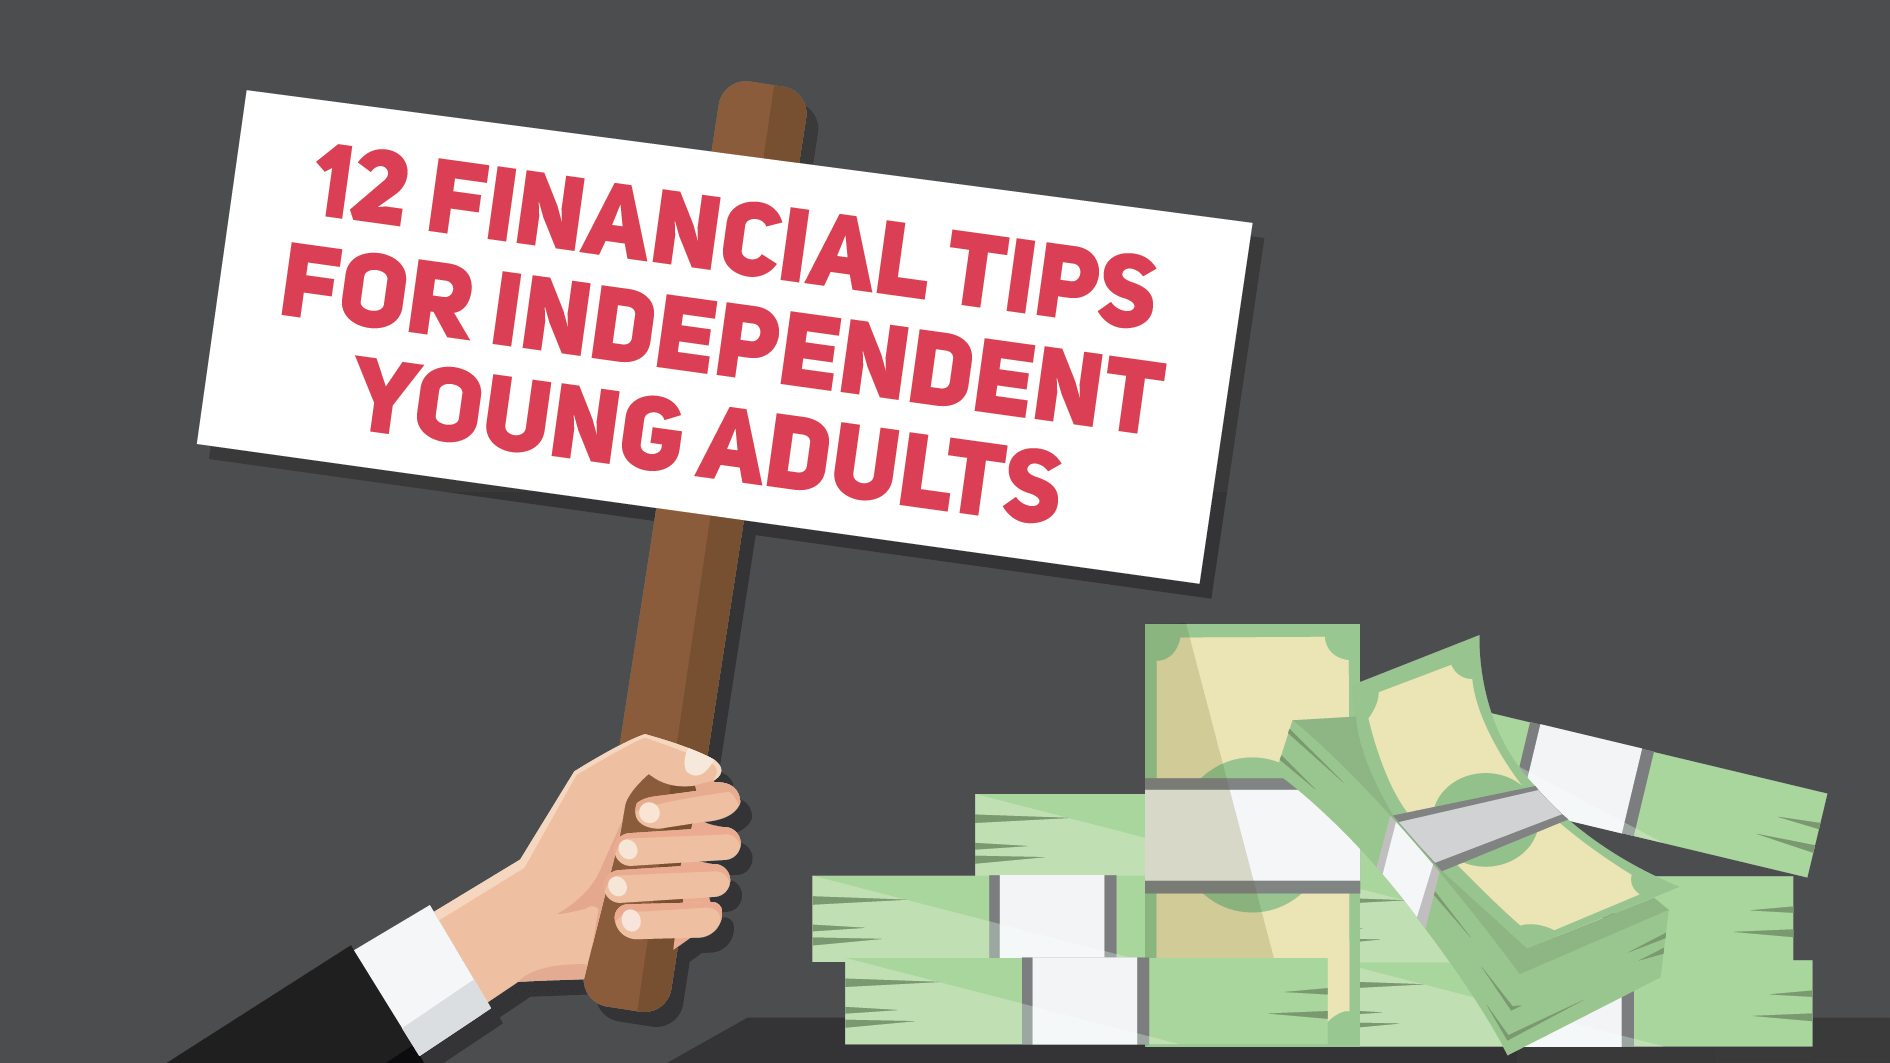 from Maddox financial tips for young adults